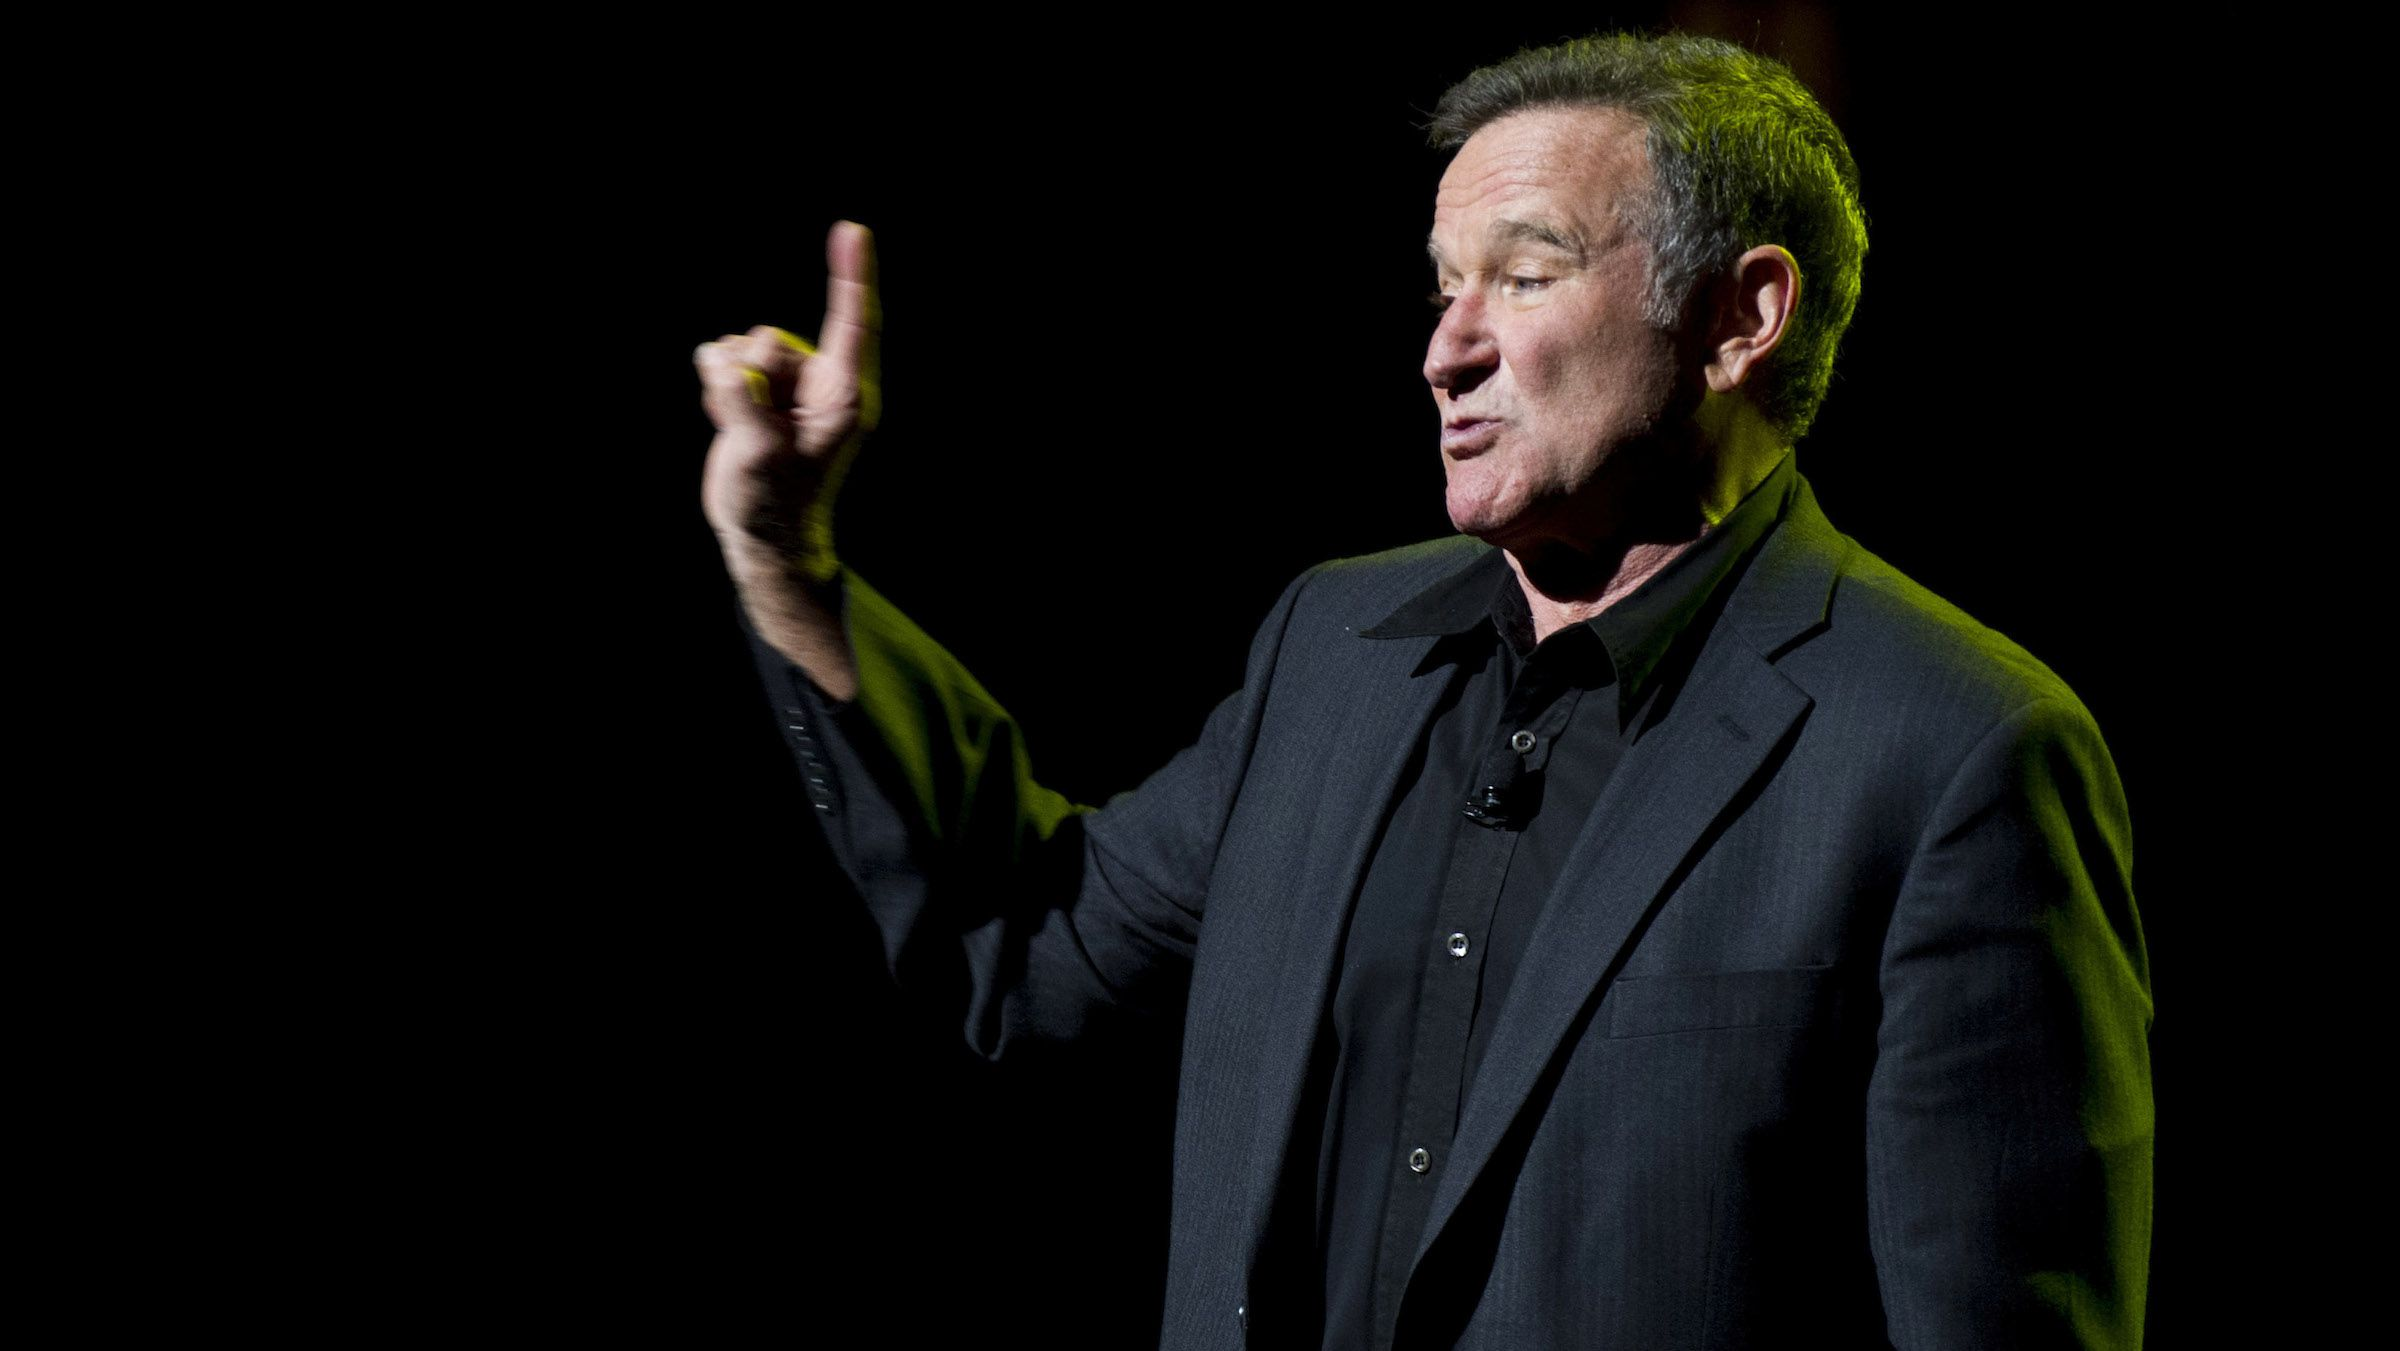 Robin Williams talks about suicide, comedy, and love with Marc Maron